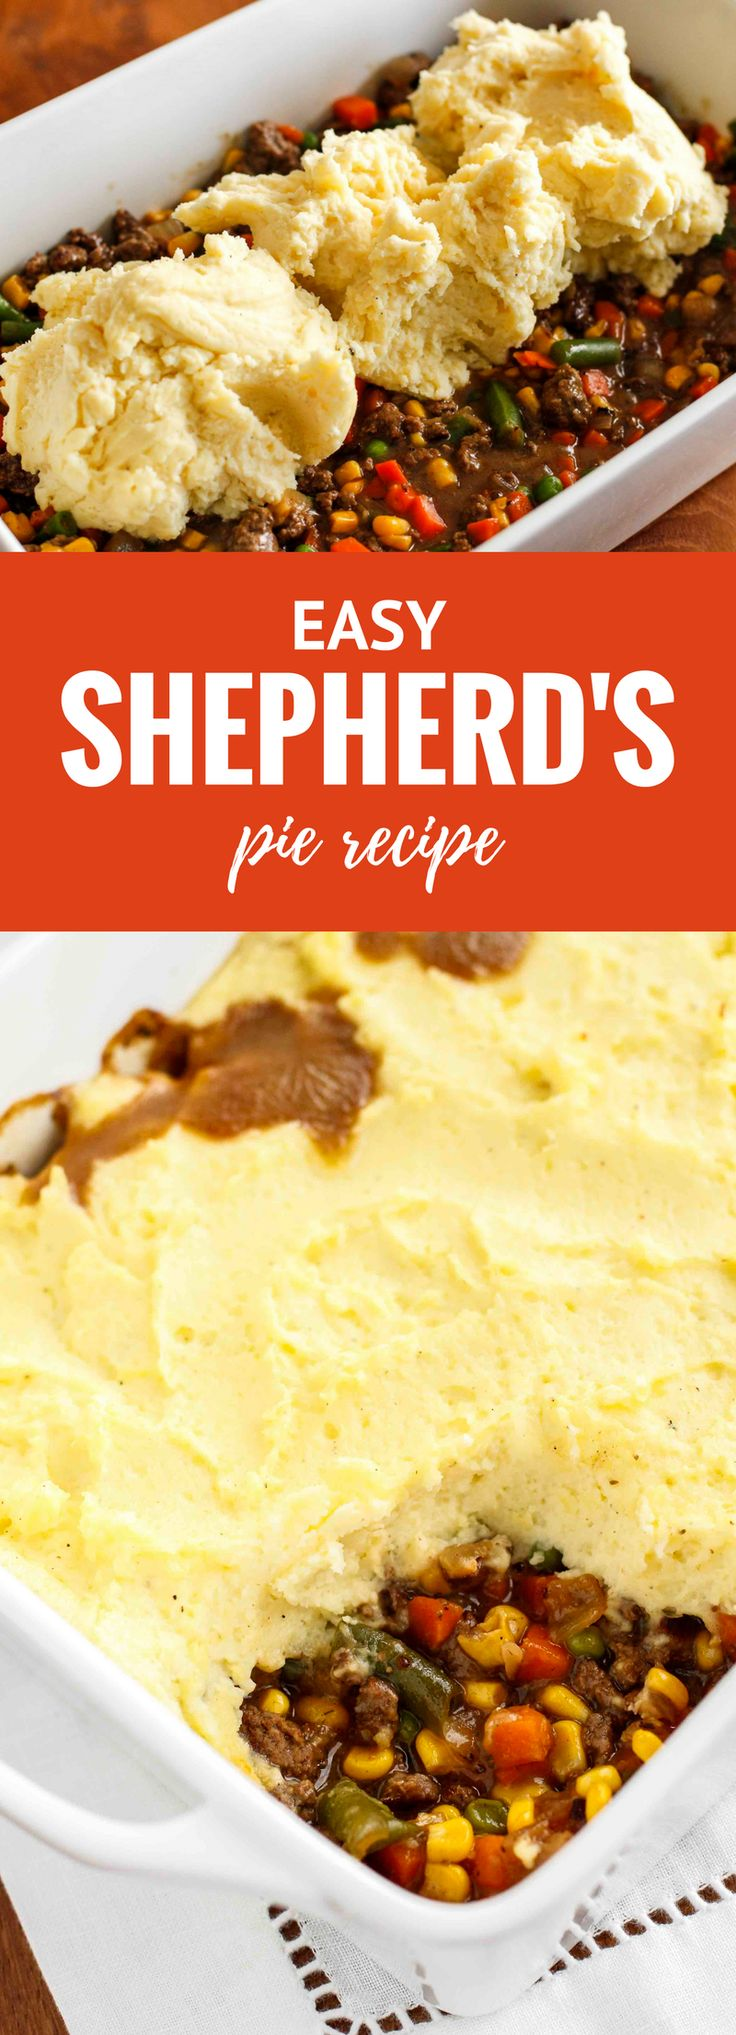 Shepherd's Pie Recipe -- shepherd's pie is a fabulous comfort food, as well as one of my favorite ways to use up leftover mashed potatoes!   unsophisticook.com